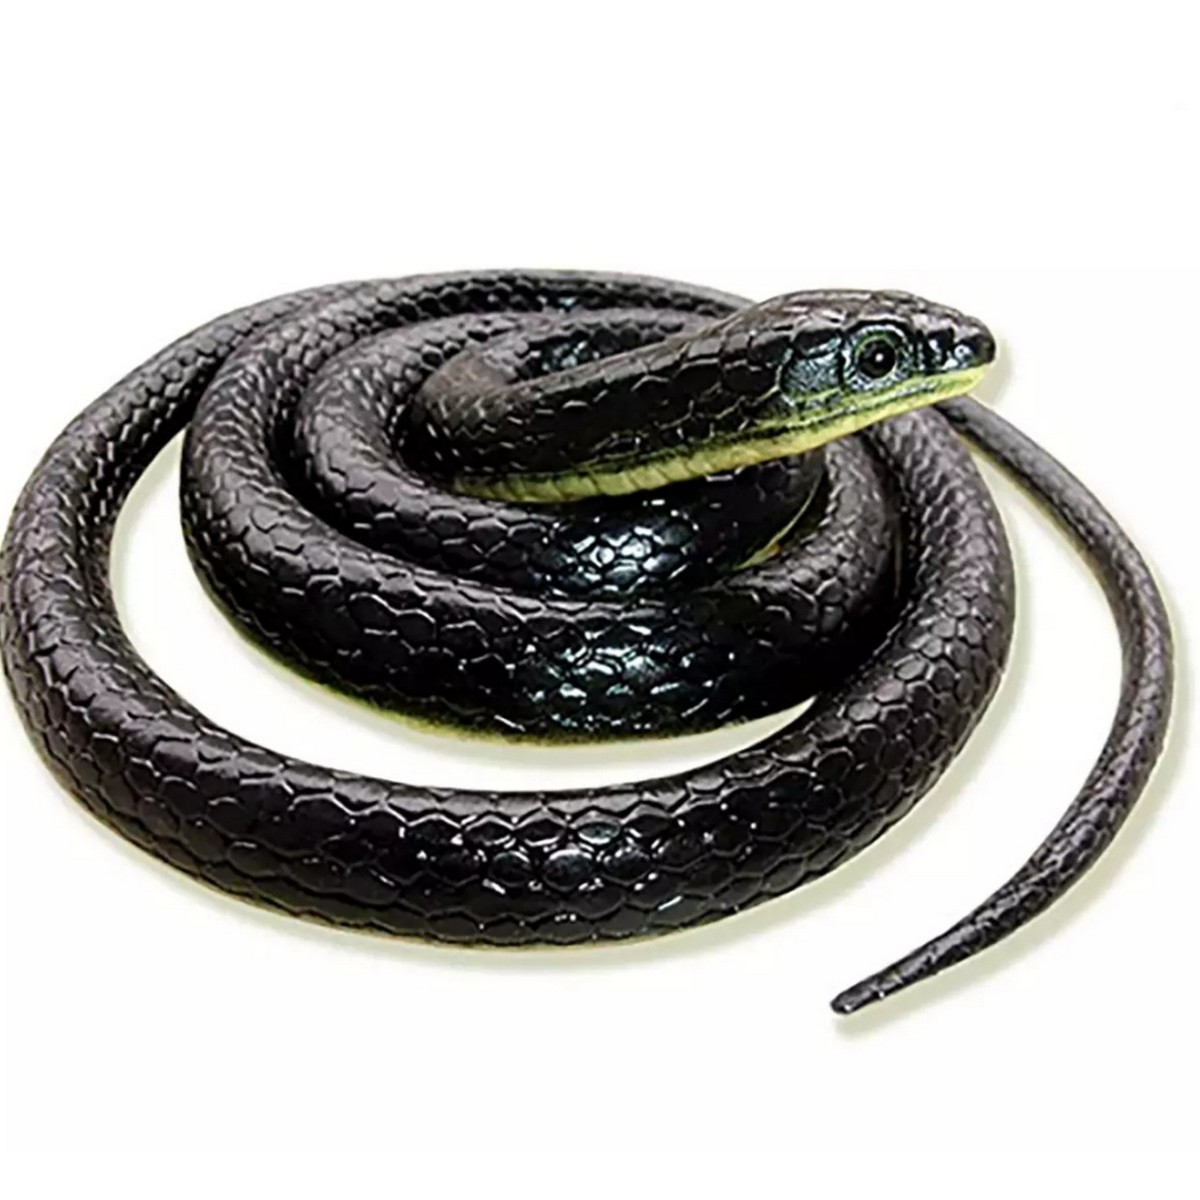 ARTIFICIAL RUBBER SNAKE 25INCHES LENGTH(FOR PRANK AND FUN)